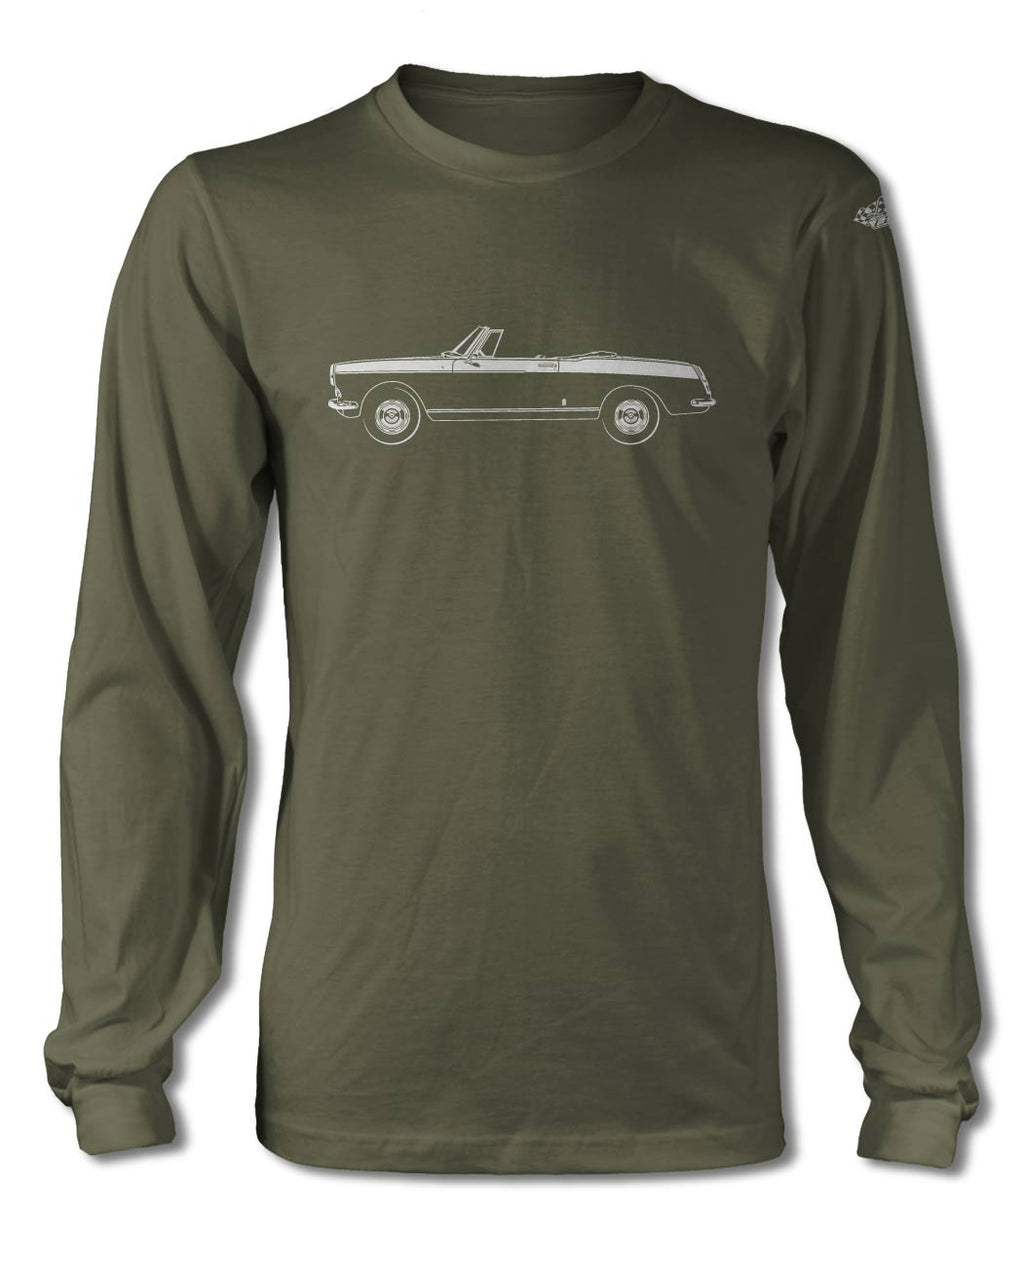 Peugeot 504 Convertible Cabriolet T-Shirt - Long Sleeves - Side View